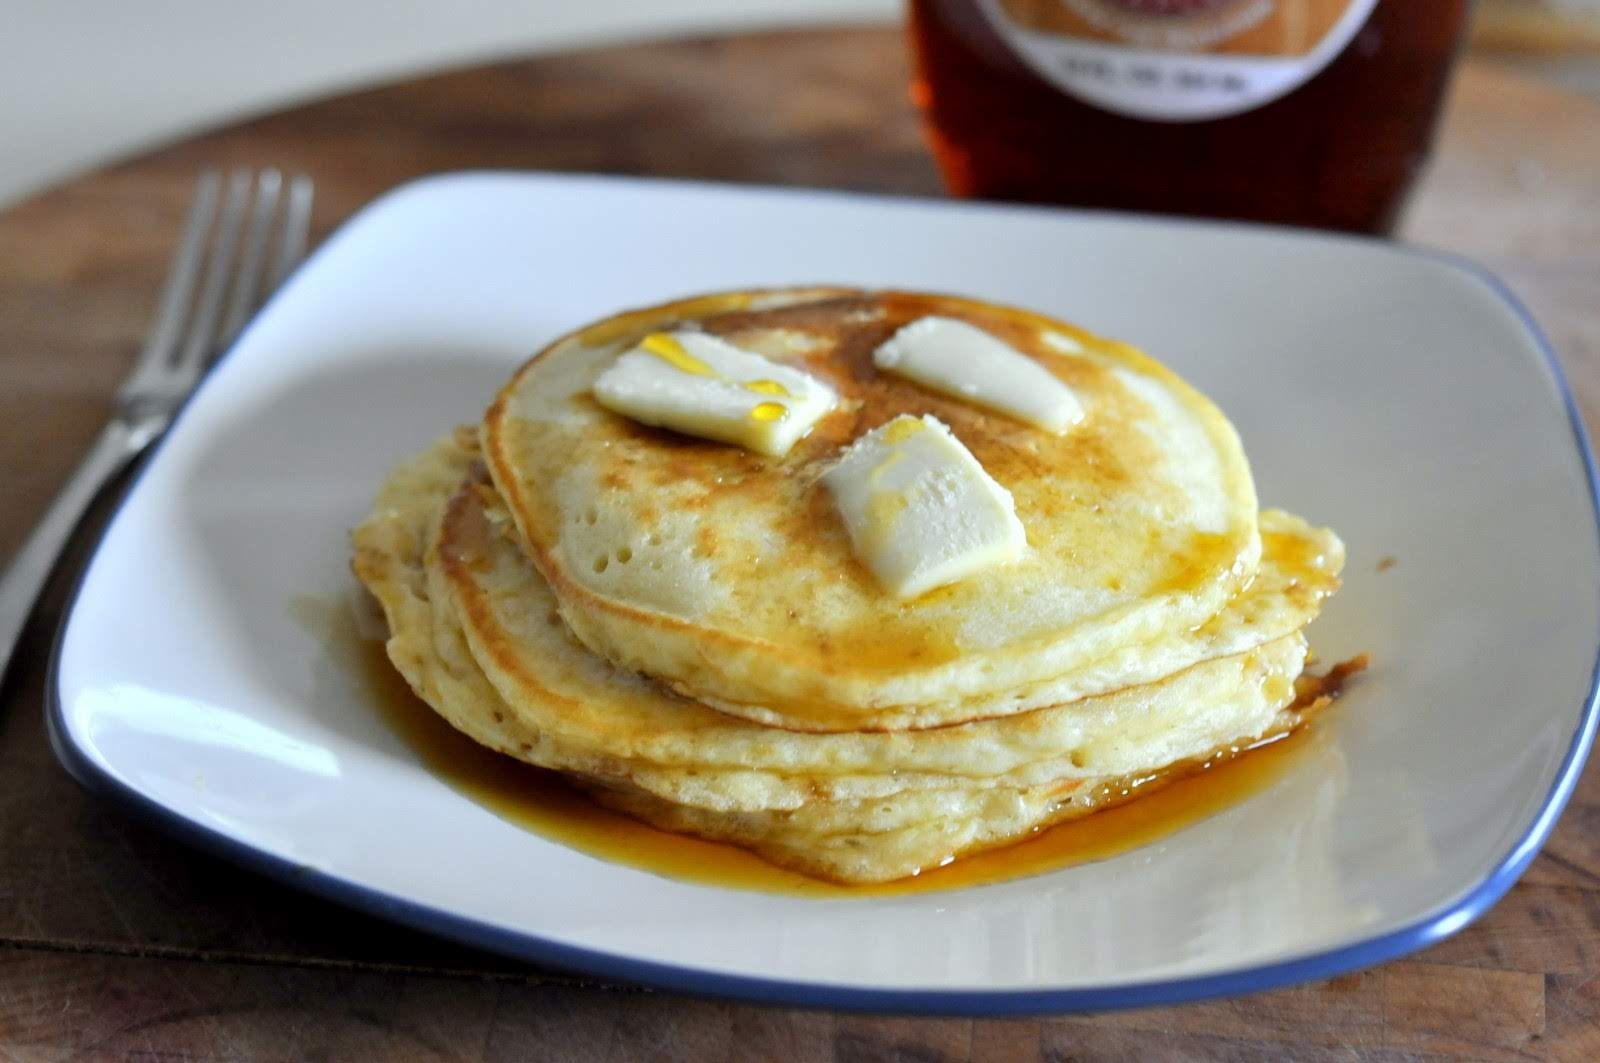 Plate of homemade pancakes with butter and maple syrup | Taste As You Go